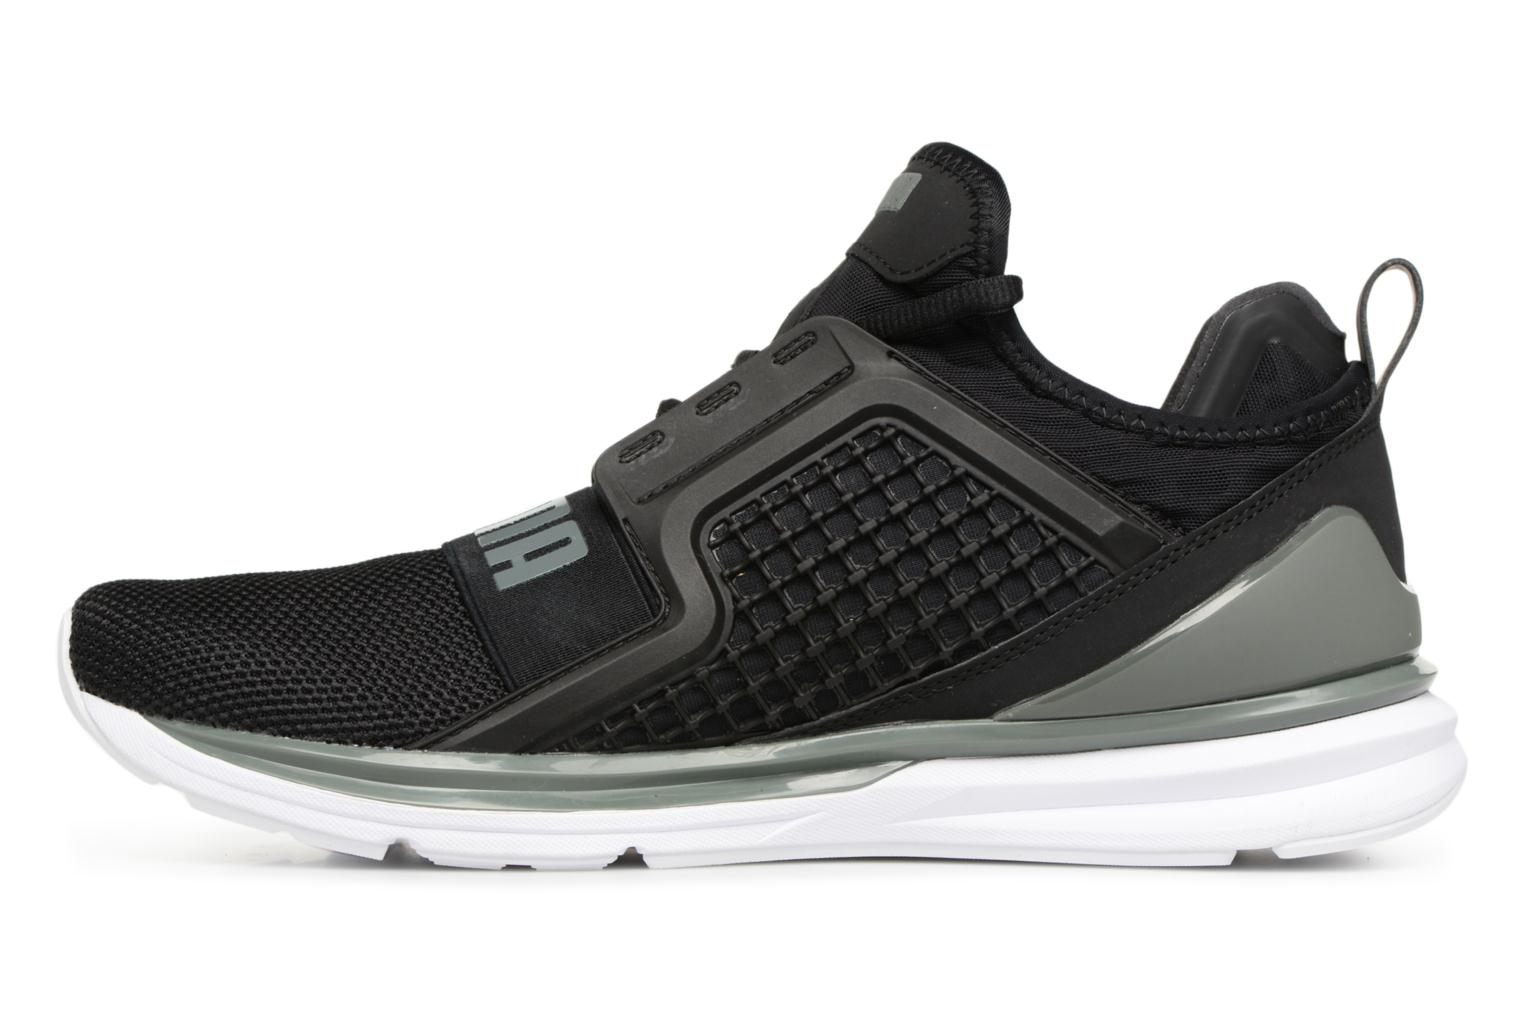 Limitless Black Puma Knit Puma Knit pebble Black Limitless pebble Puma Limitless sdhrtCQ